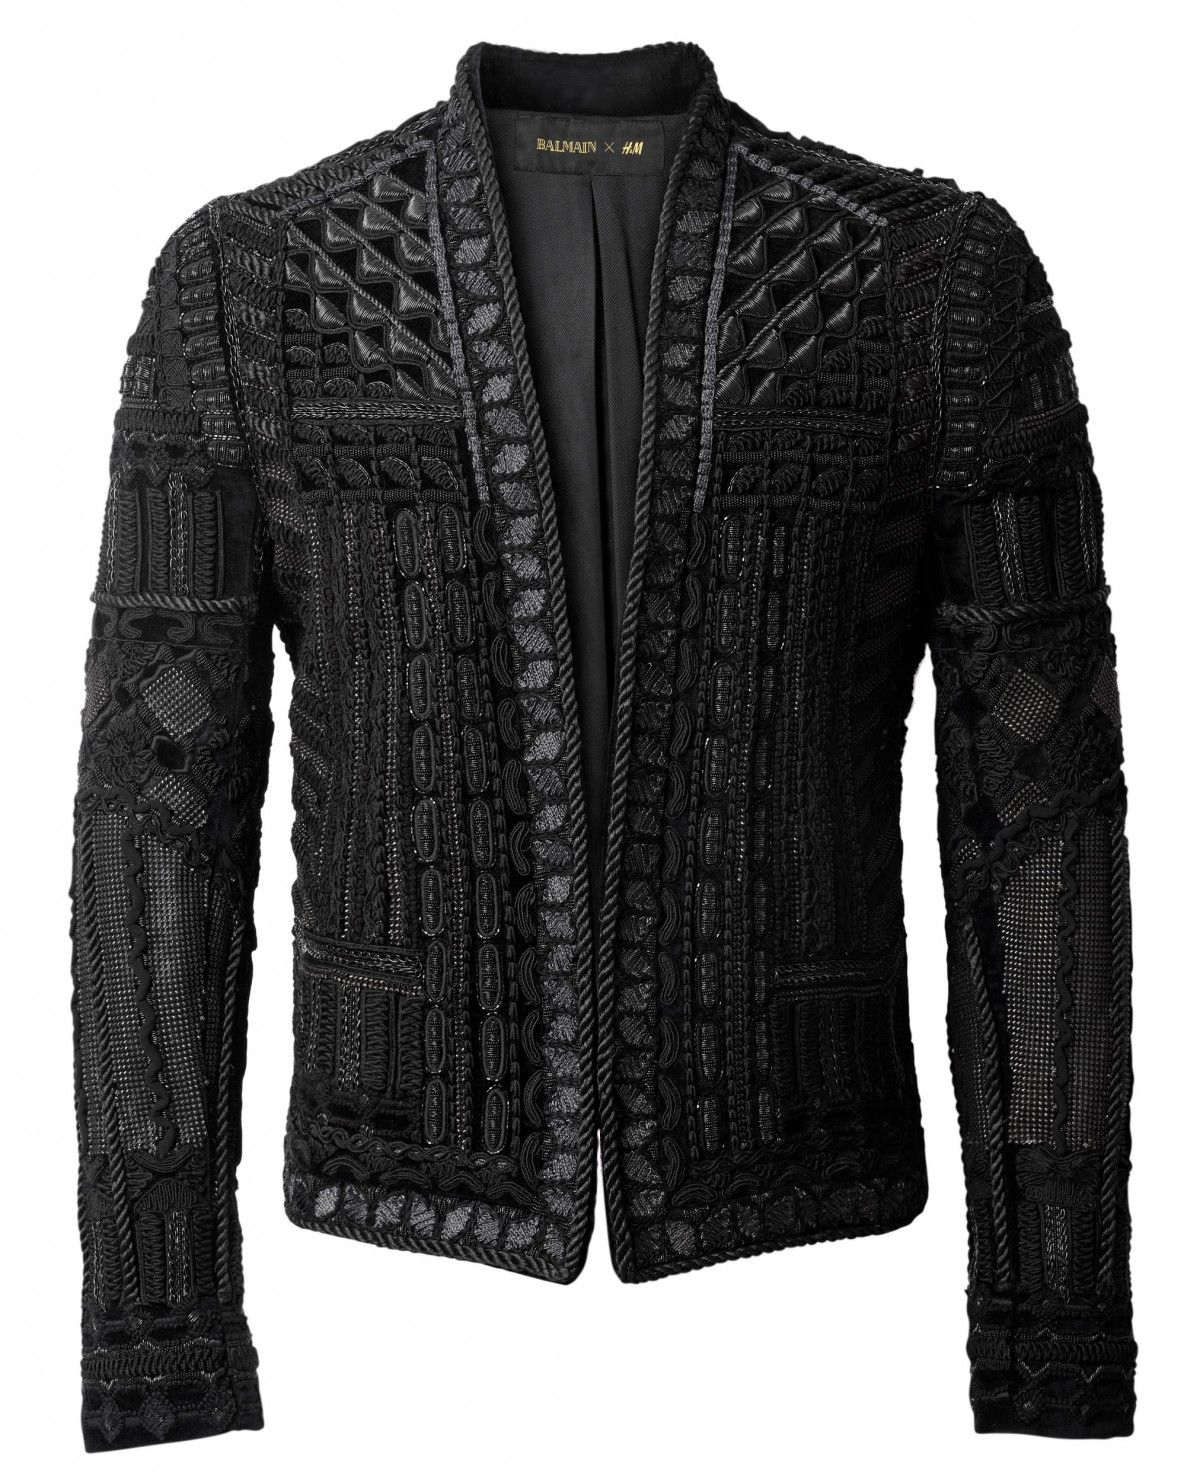 9cb7dbdc5a6f The 16 Most Outrageous Pieces in the Balmain x H M Collection ...